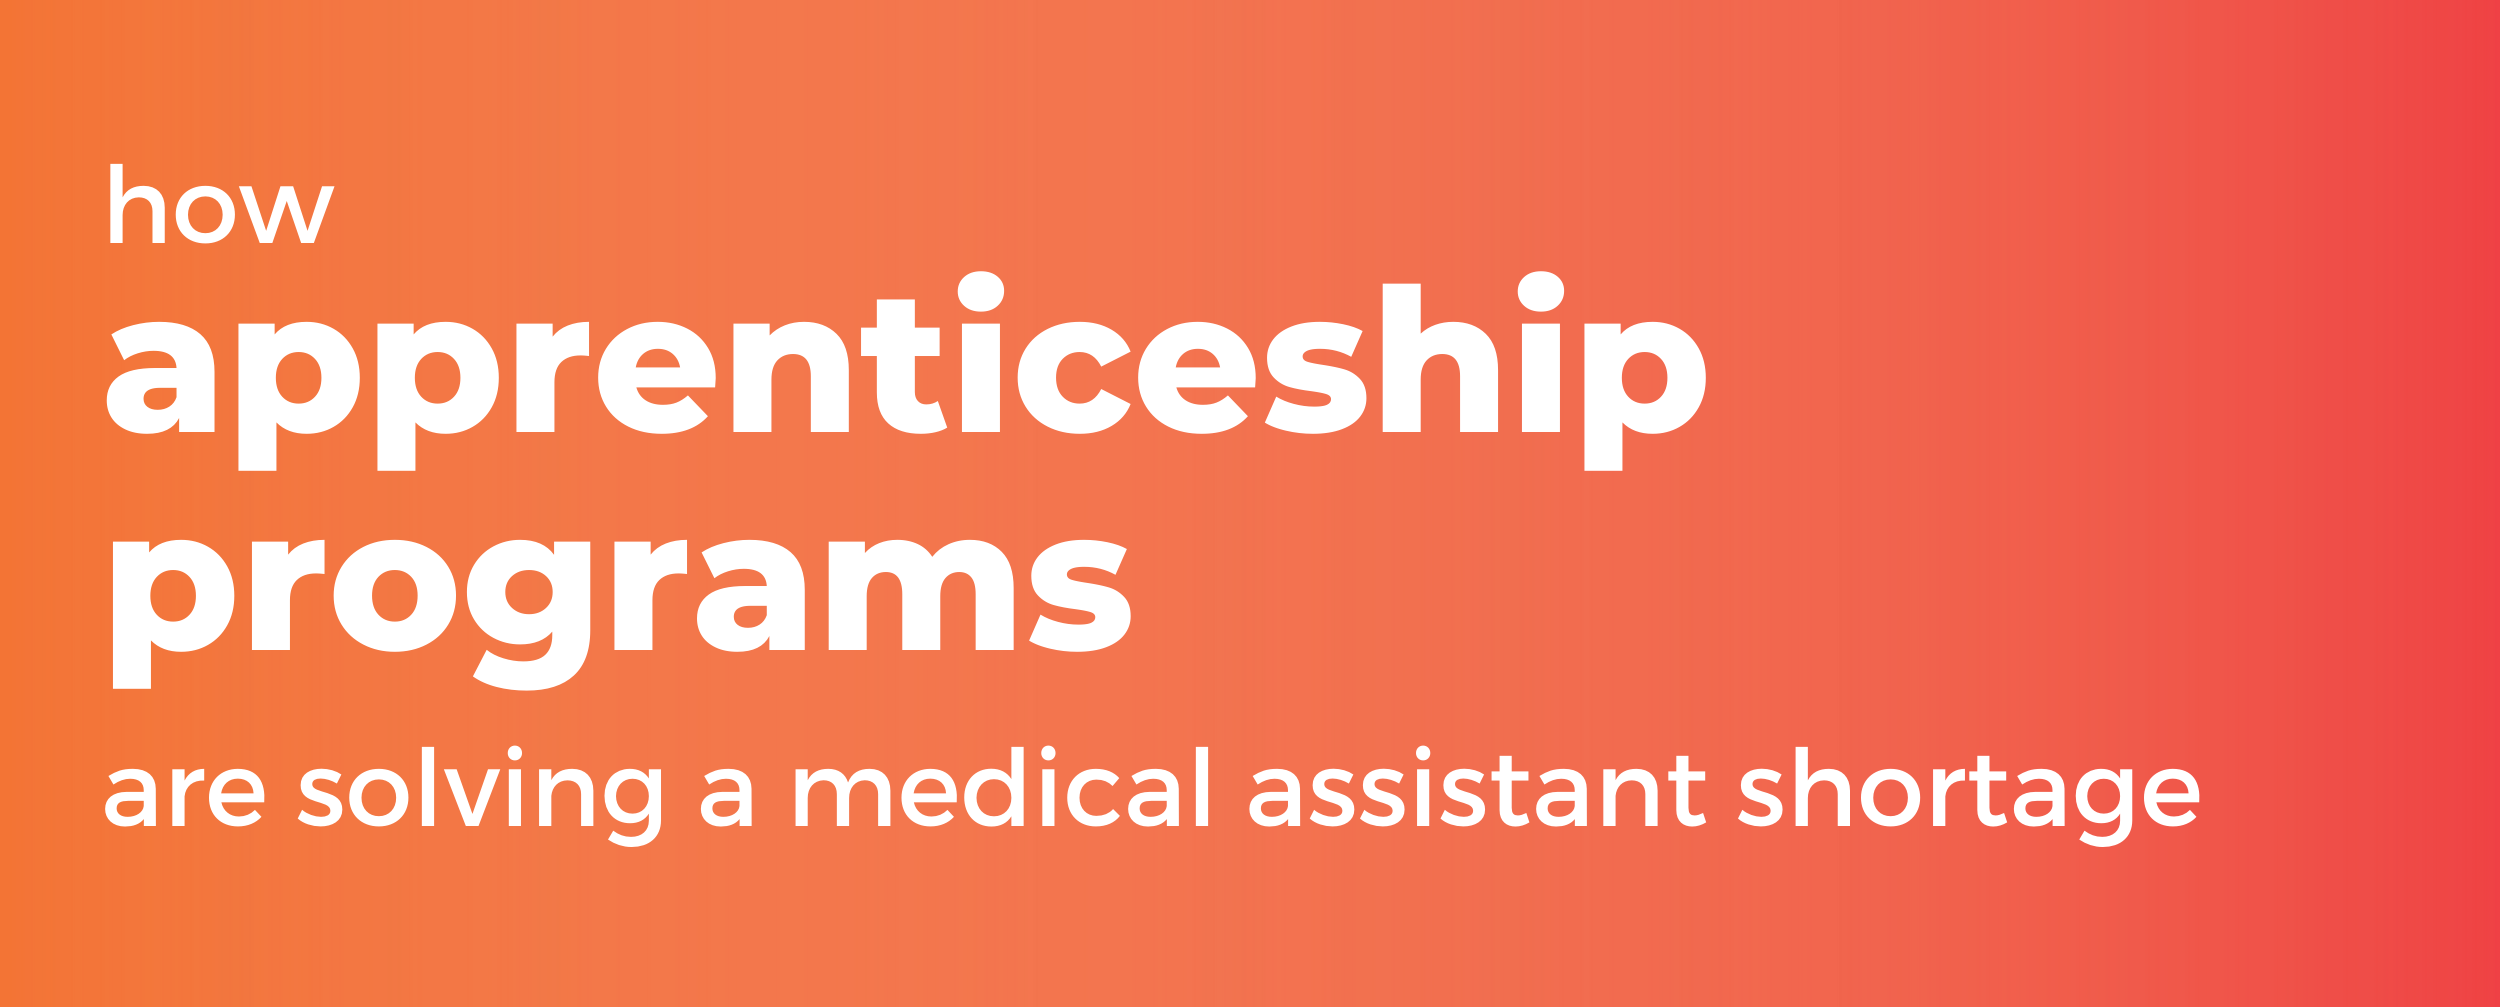 How Apprenticeship Programs are Solving a Medical Assistant Shortage (1)